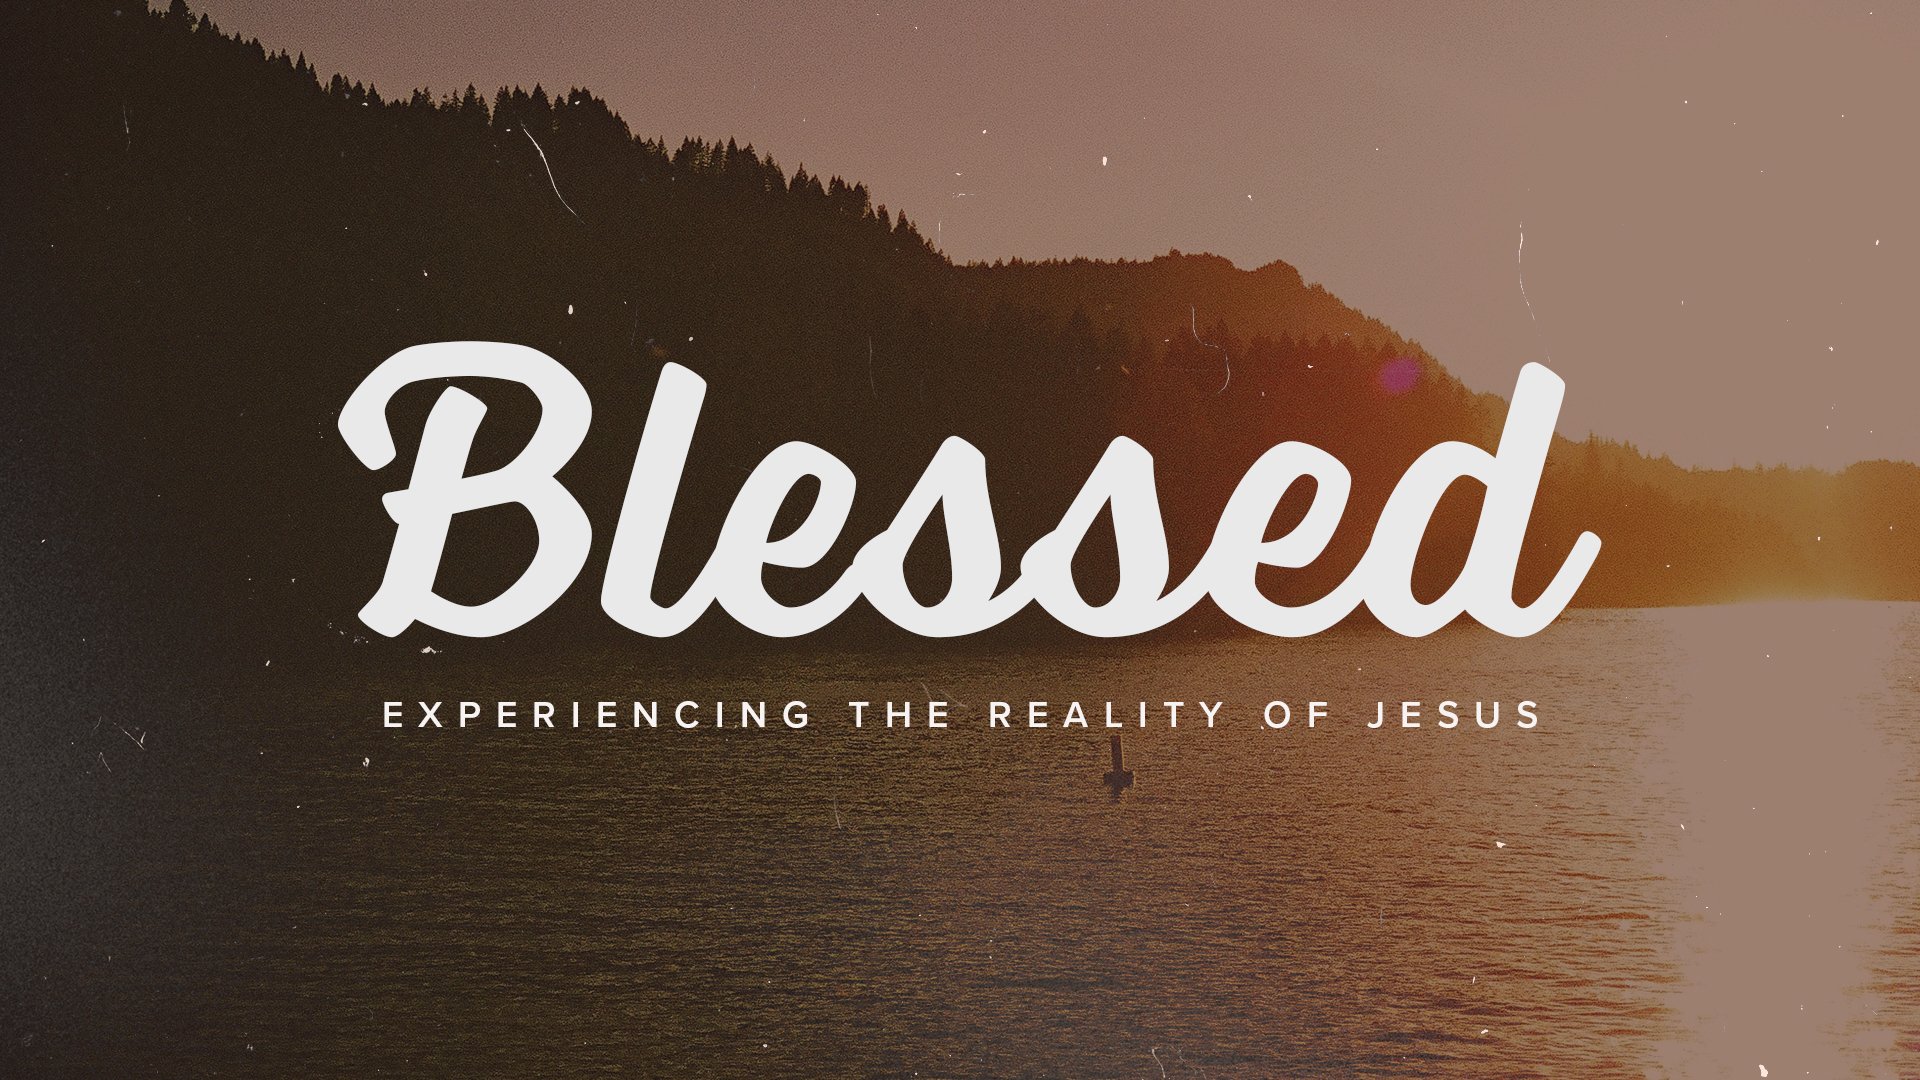 Blessed-Simple_0011_TITLE copy.jpg